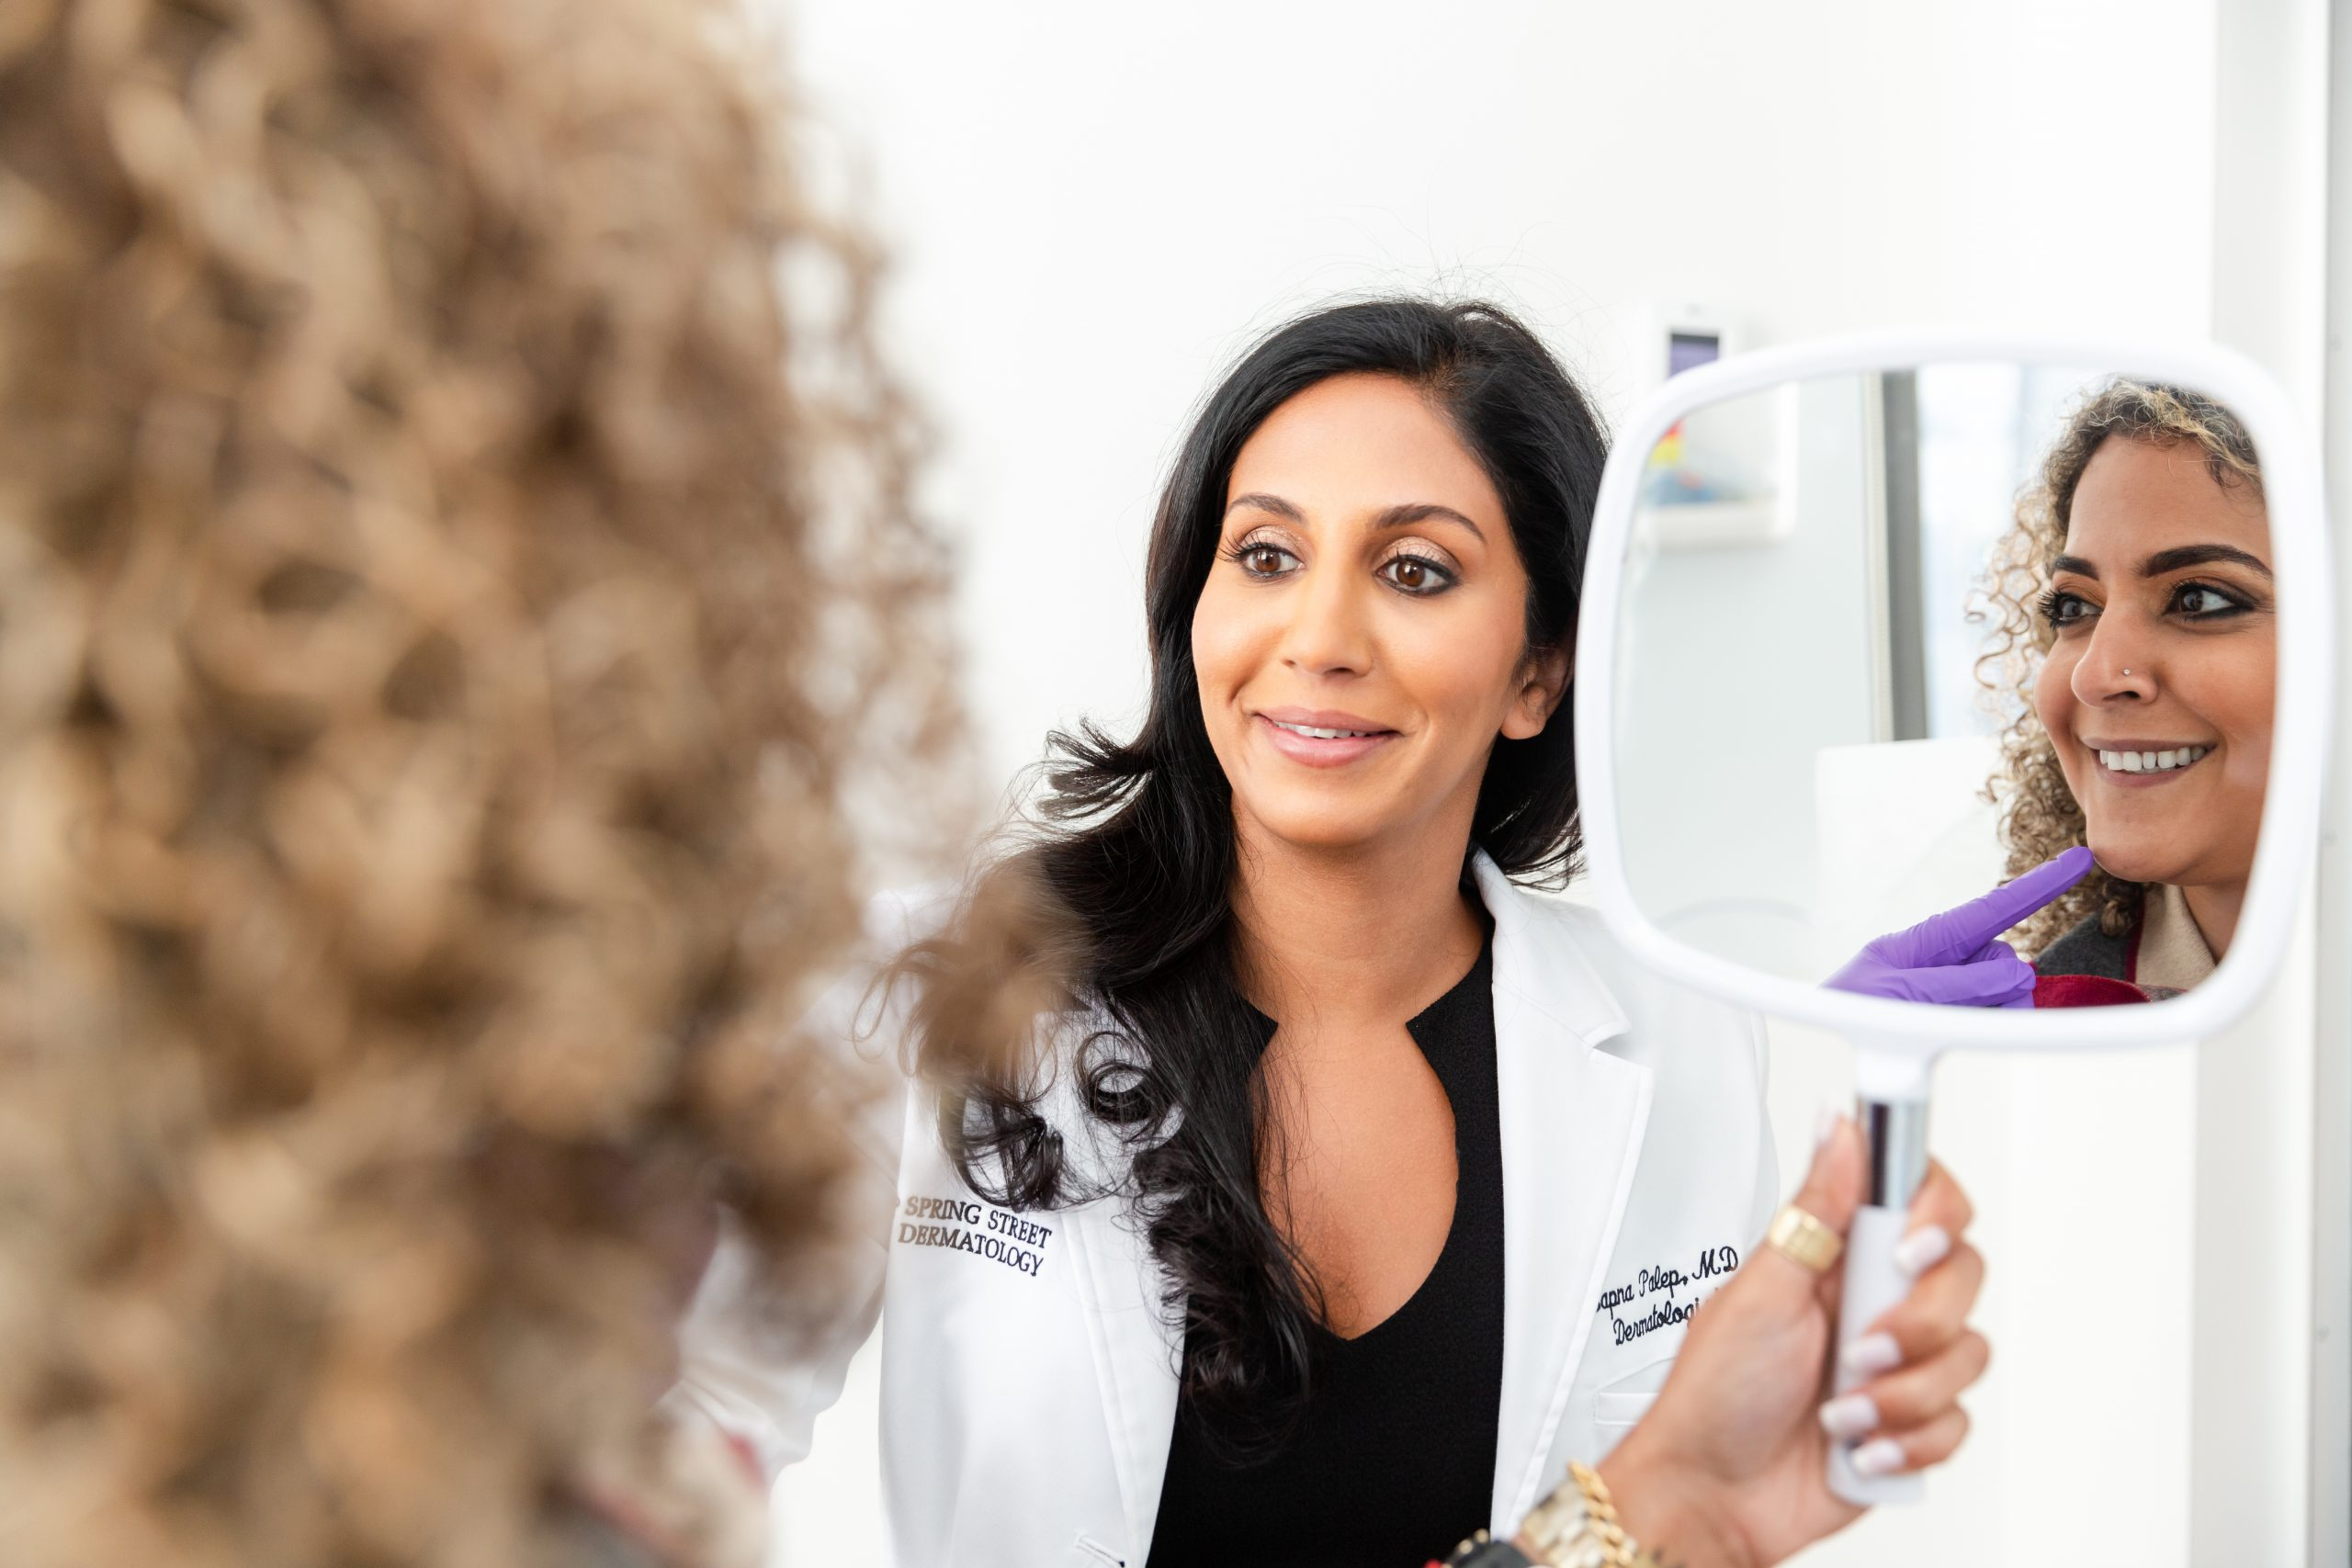 LaseMD laser treatment consultation in New York City with Dr. Palep